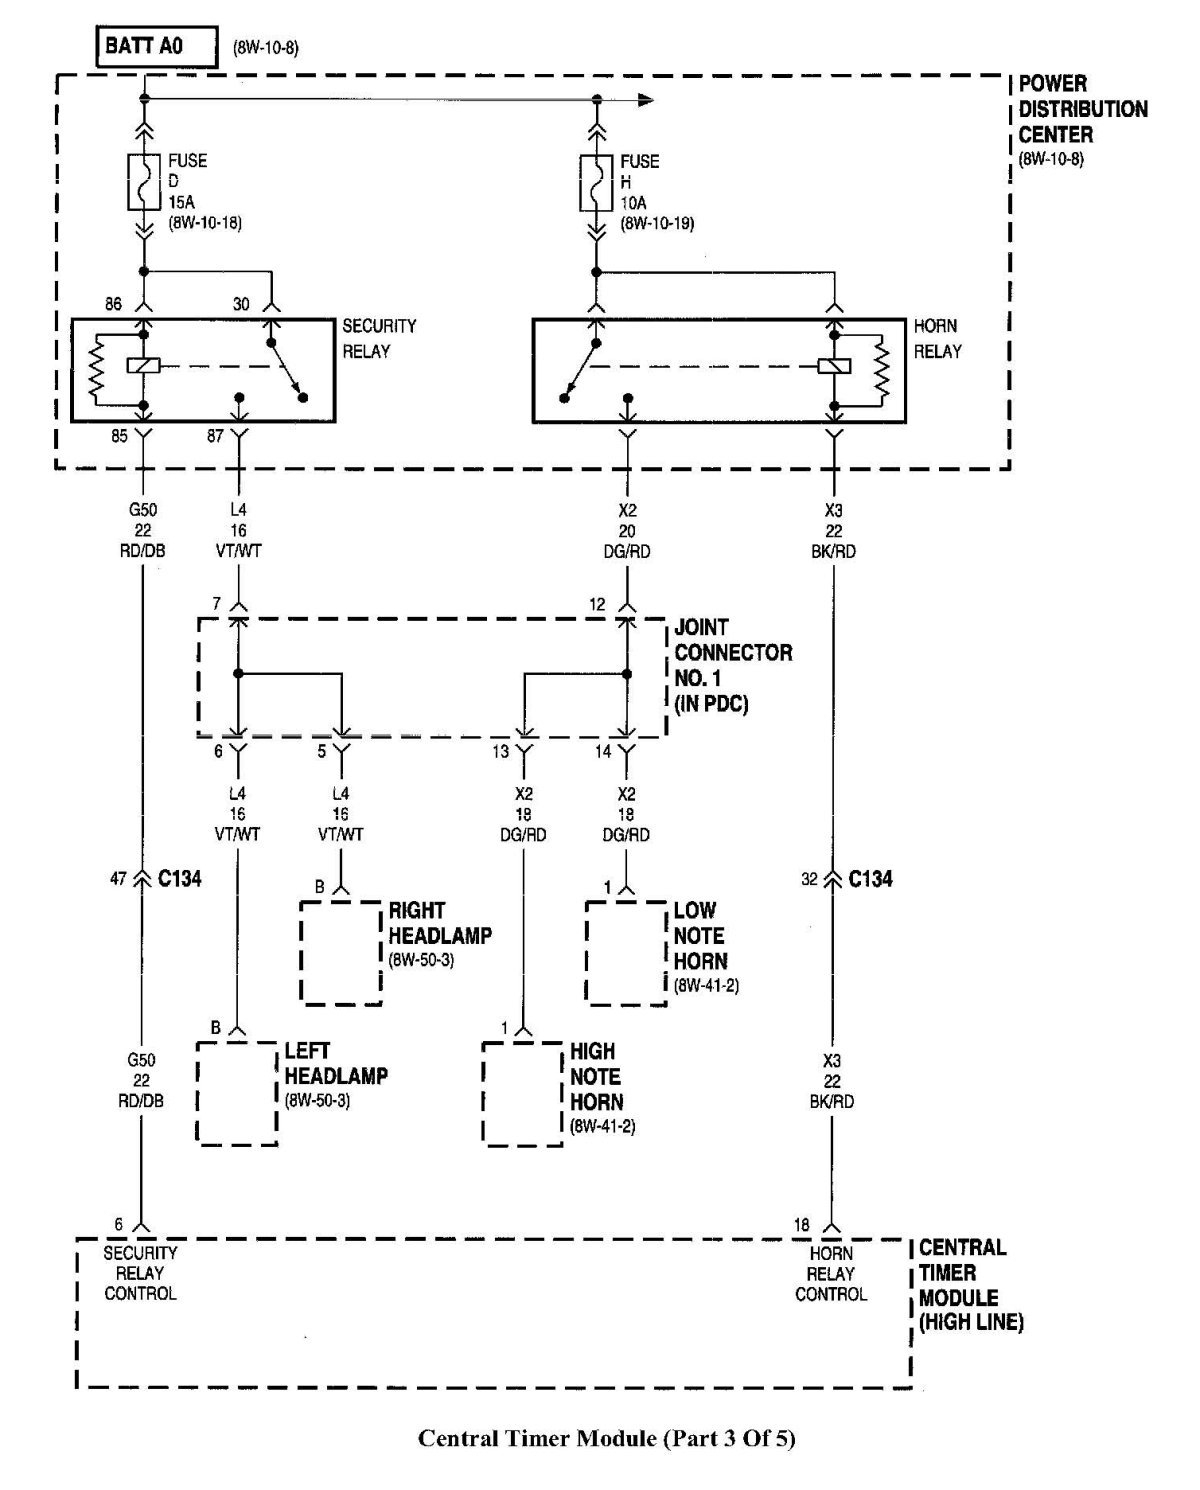 2004 Dodge Ram 1500 Headlight Wiring Diagram - Wiring Diagram Explained - 1999 Dodge Ram 1500 Trailer Wiring Diagram